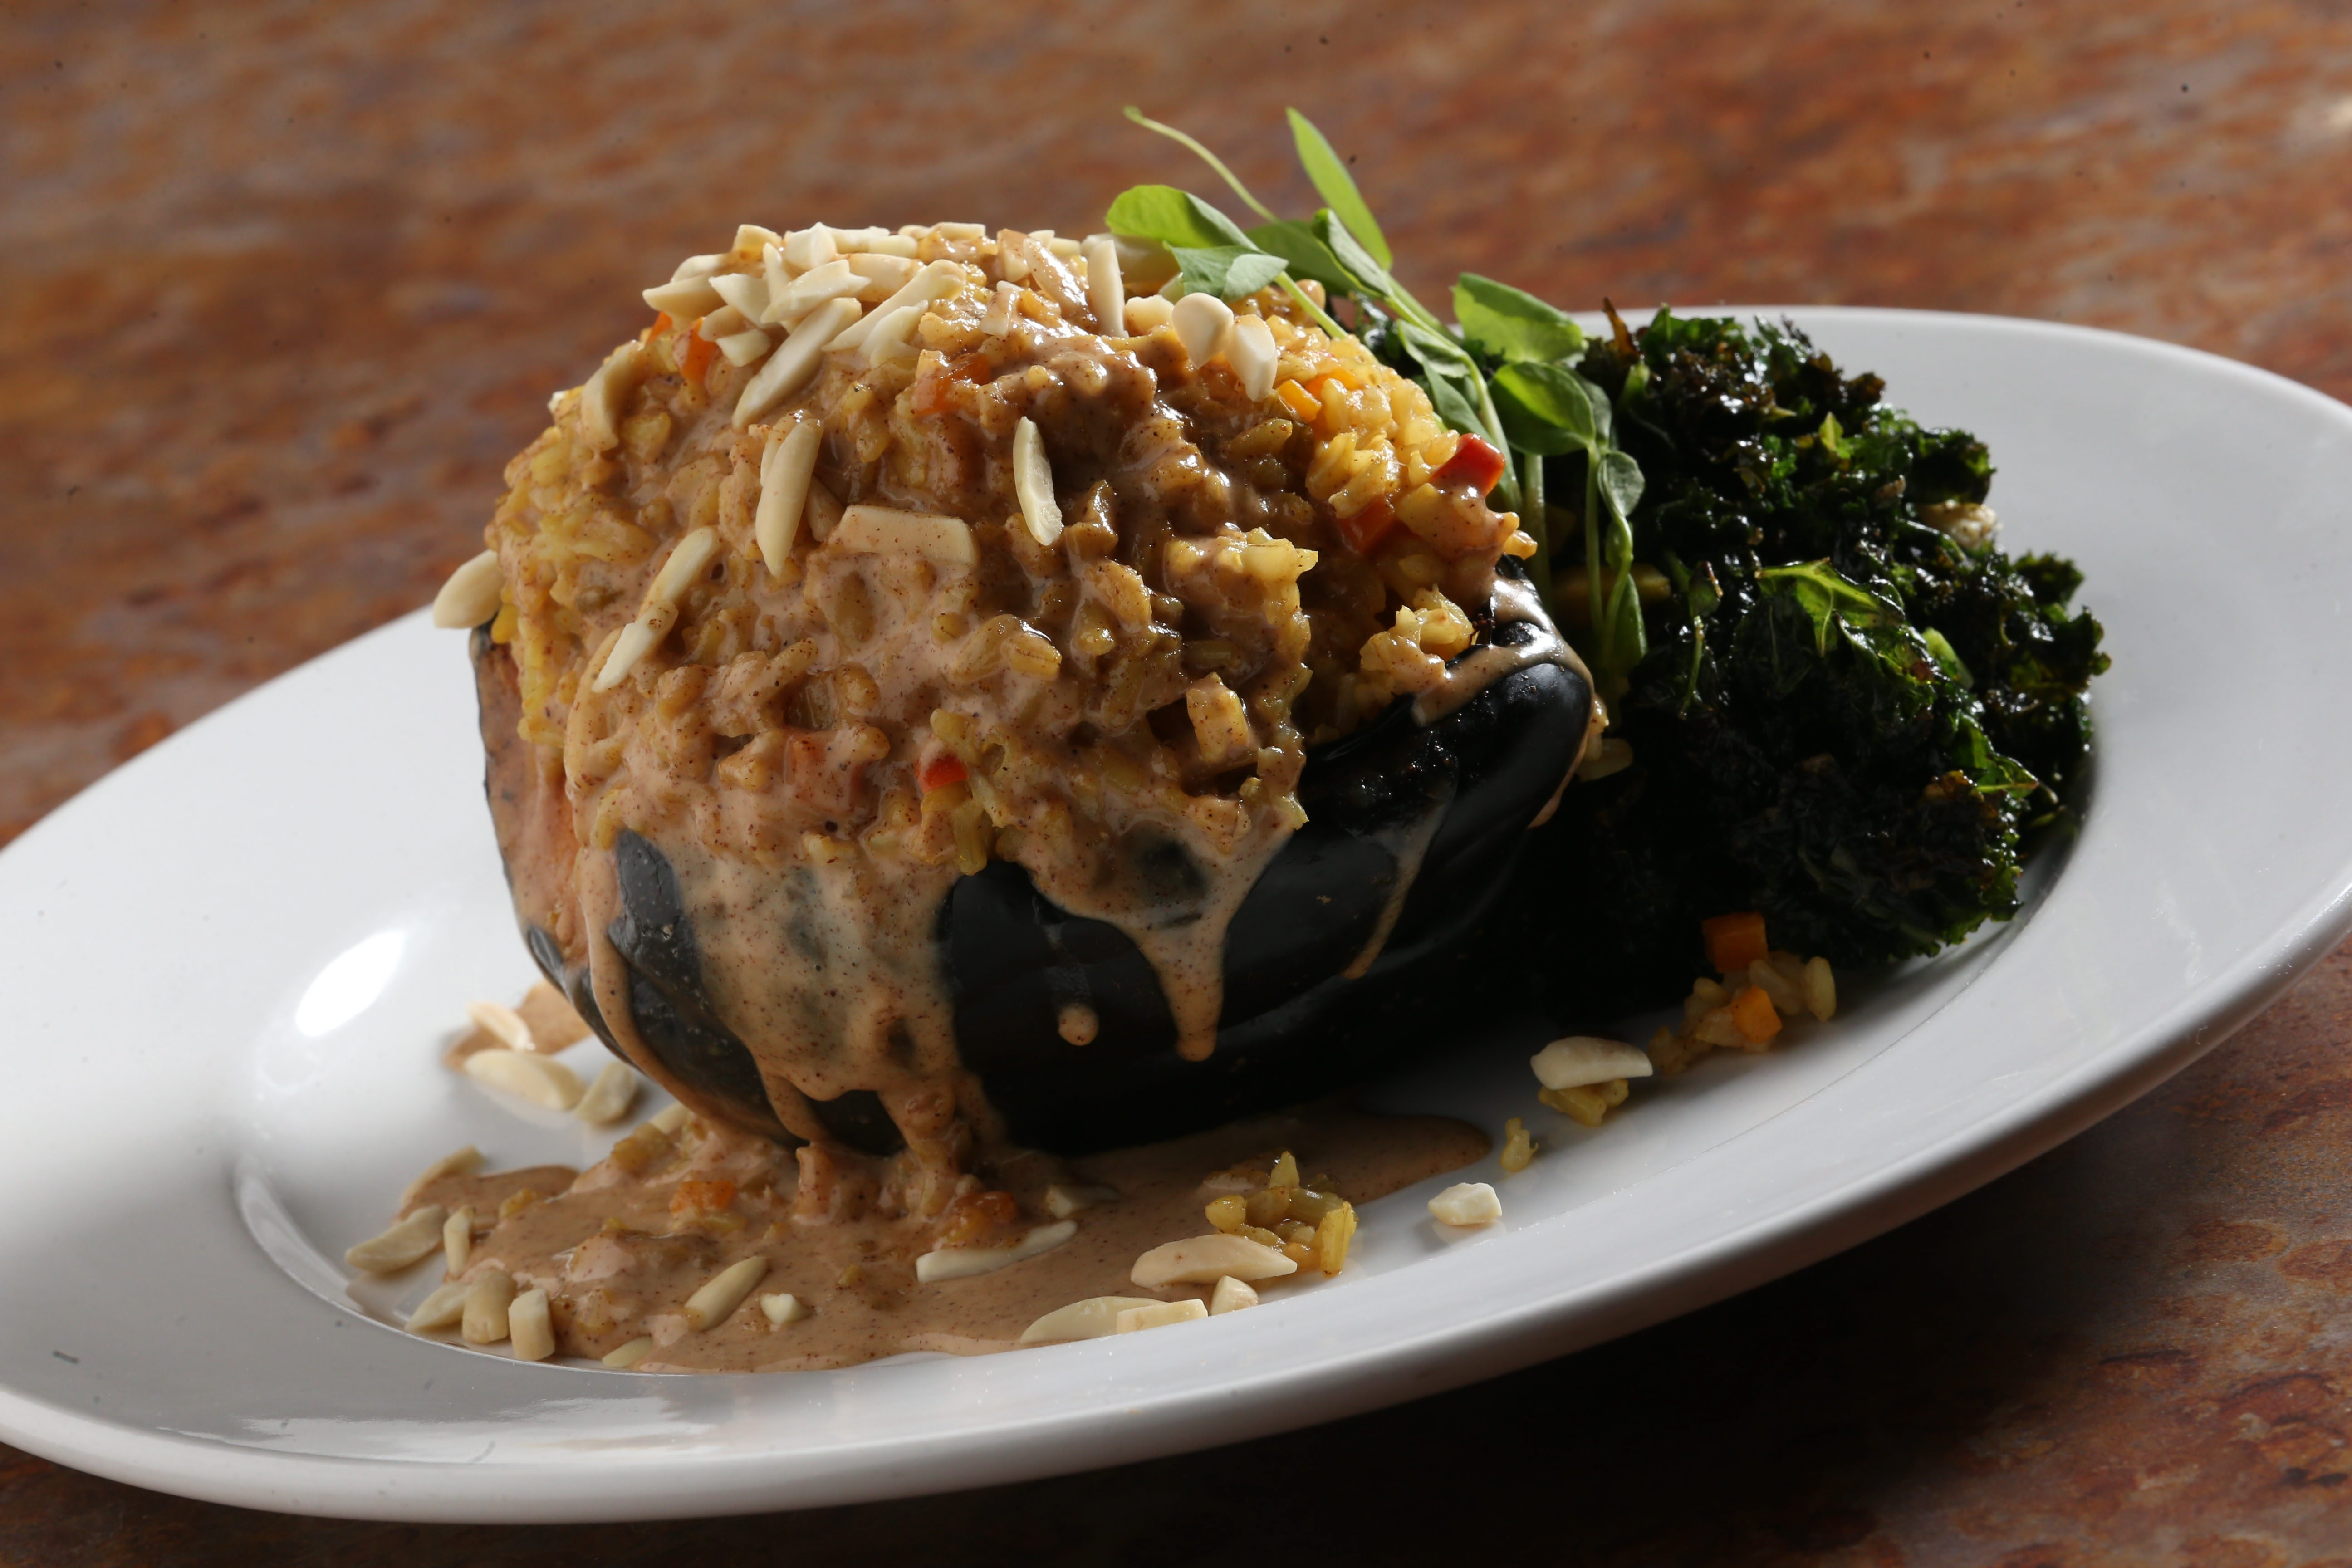 Acorn squash with el ras hangout seasoned basmati rice, garbanzo beans, golden raisins, slivered almonds, kale in a ginger coconut almond sauce. Chicken or shrimp may be added.